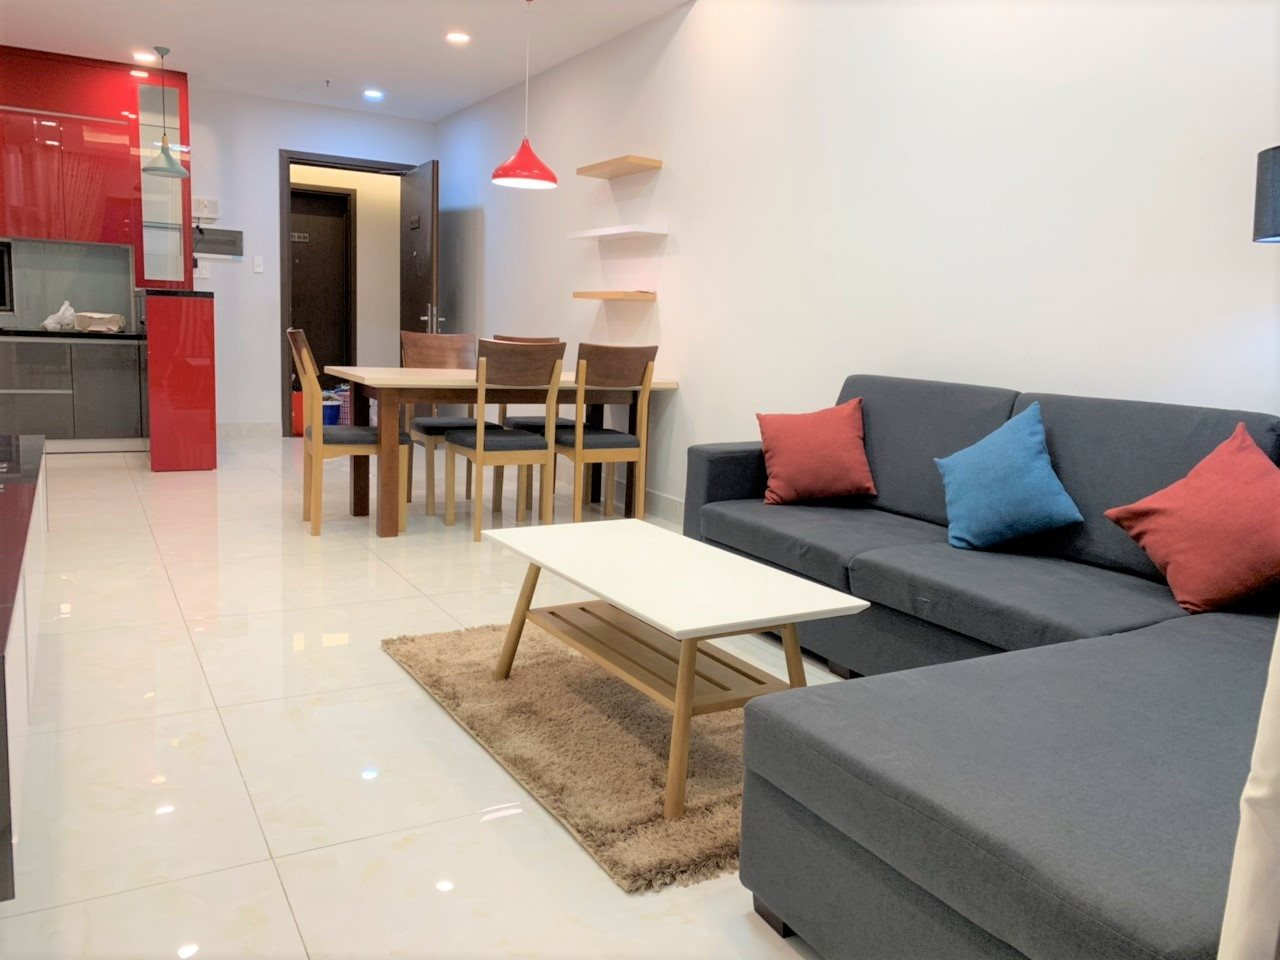 Apartment for rent BT107490 (5)